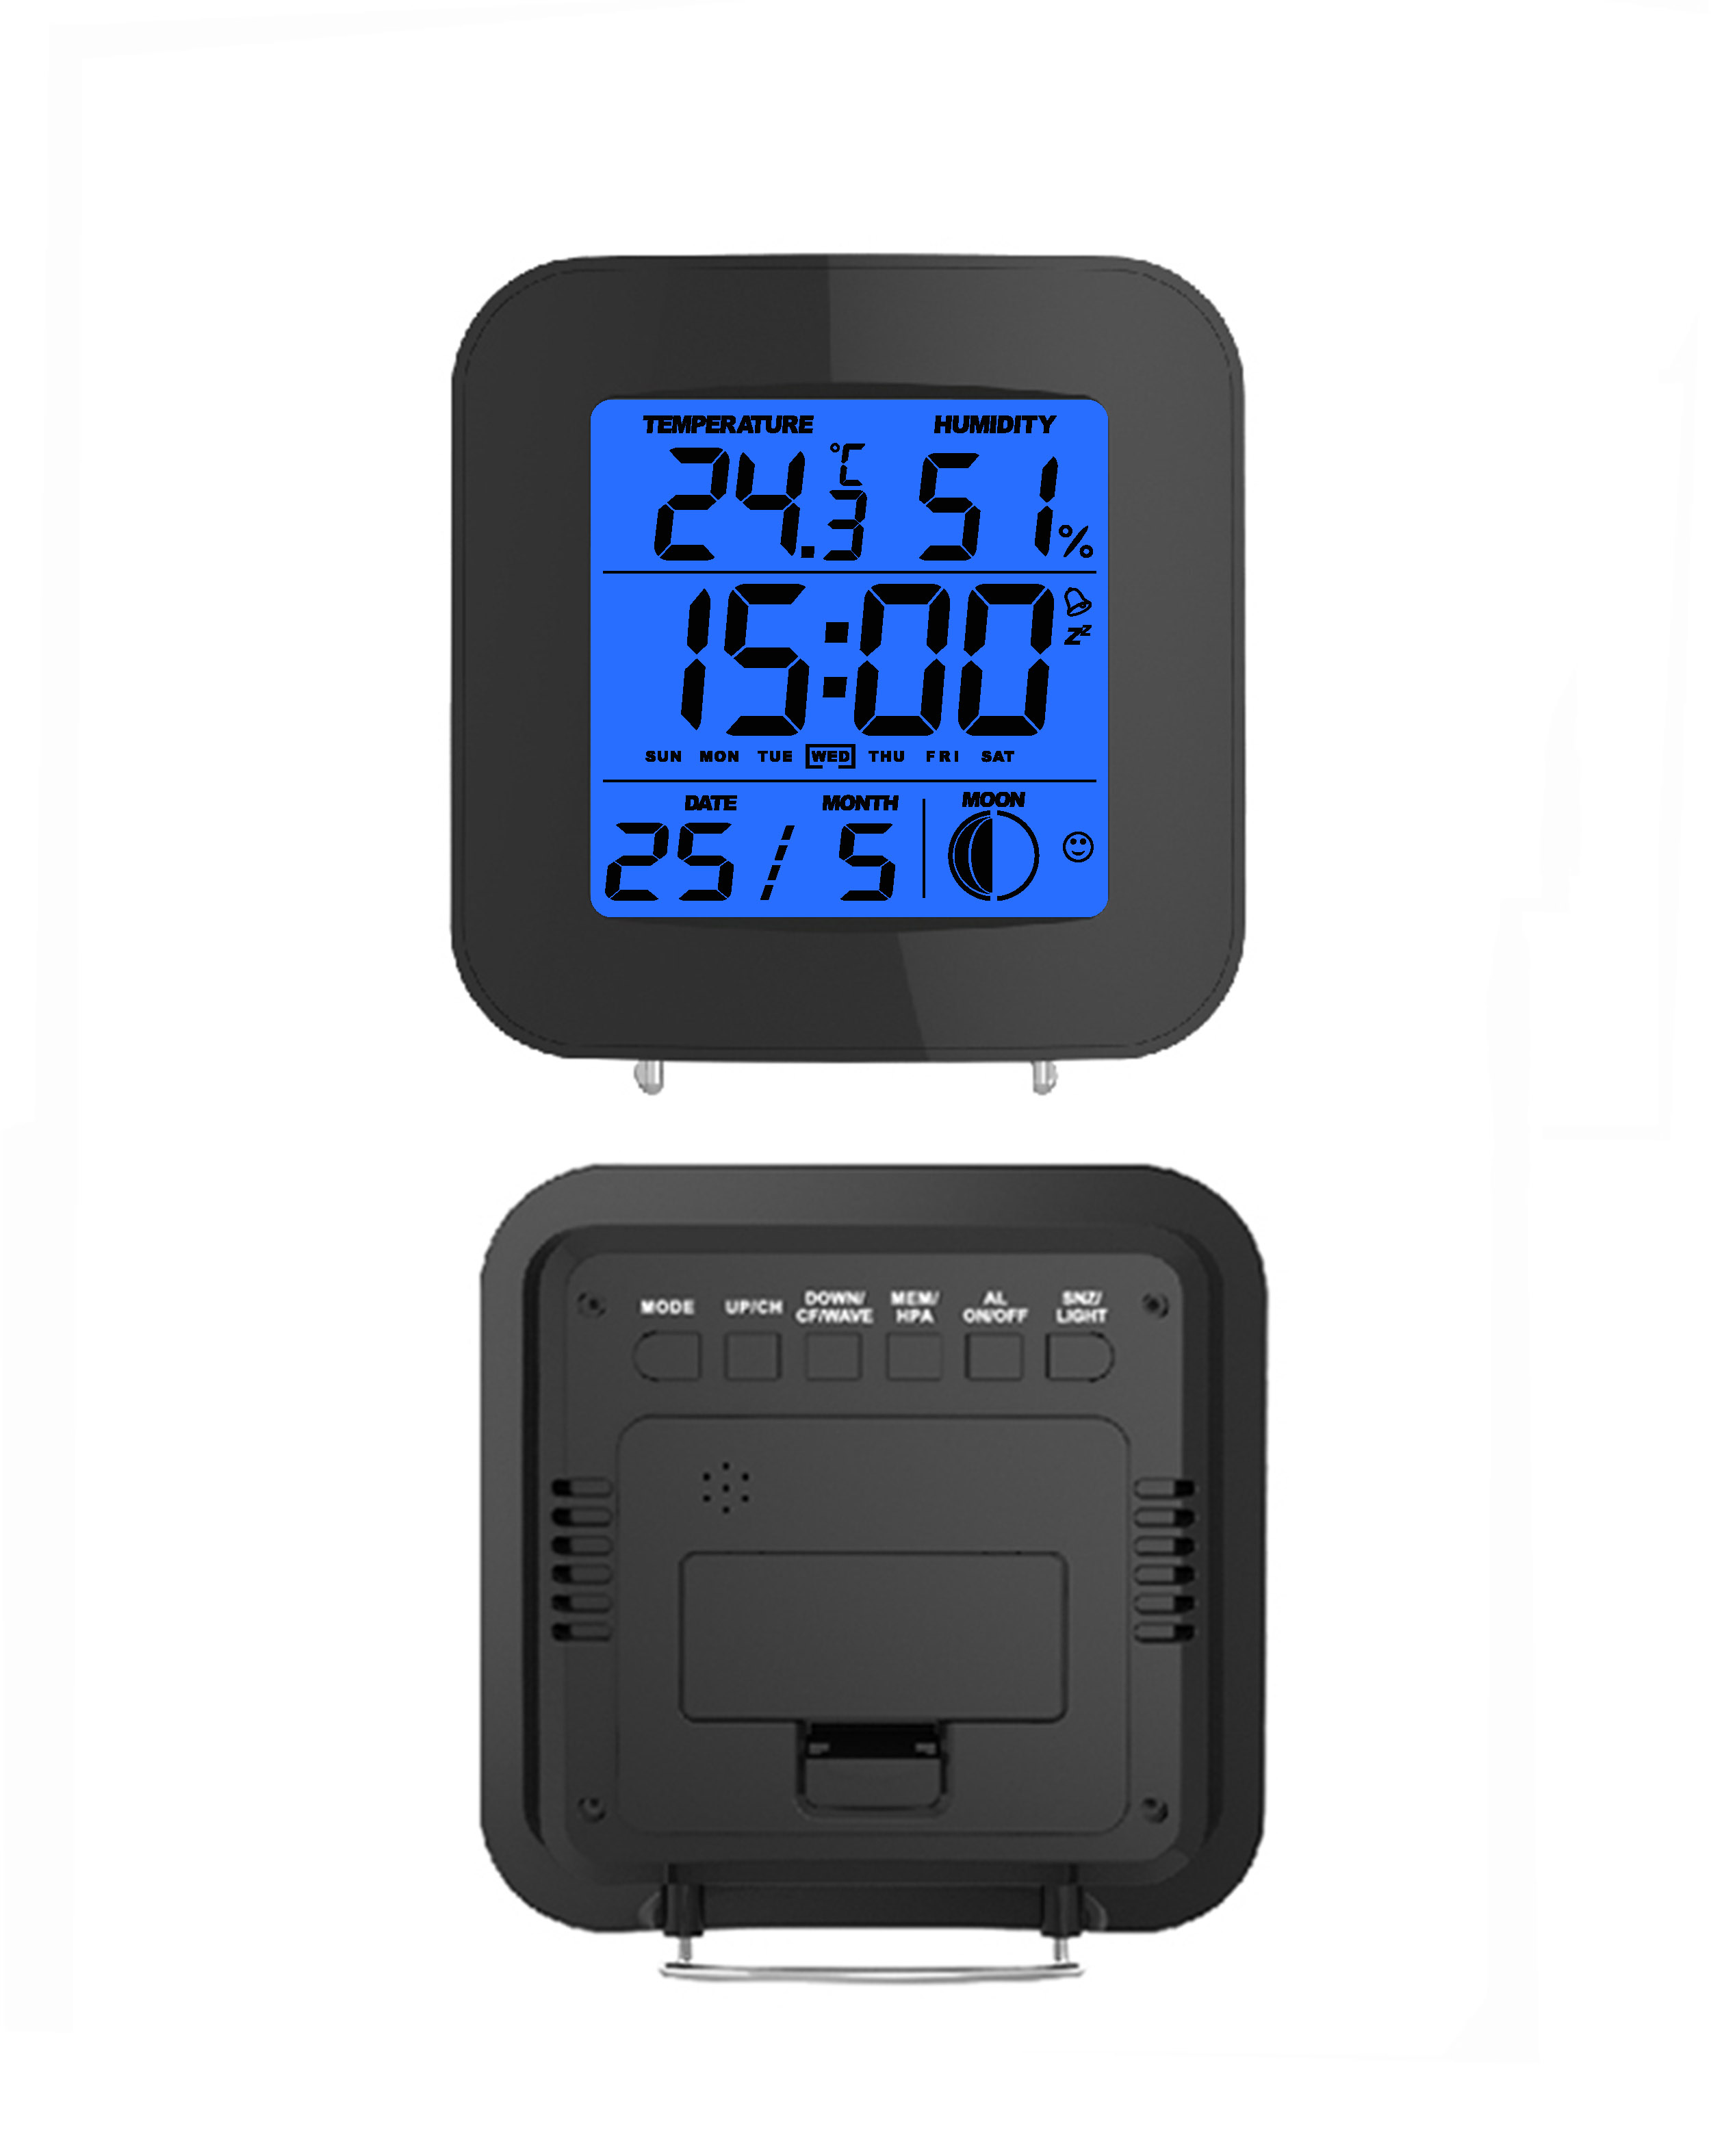 Simple radio controlled digital alarm clock with weather forecast, temperature and humidity